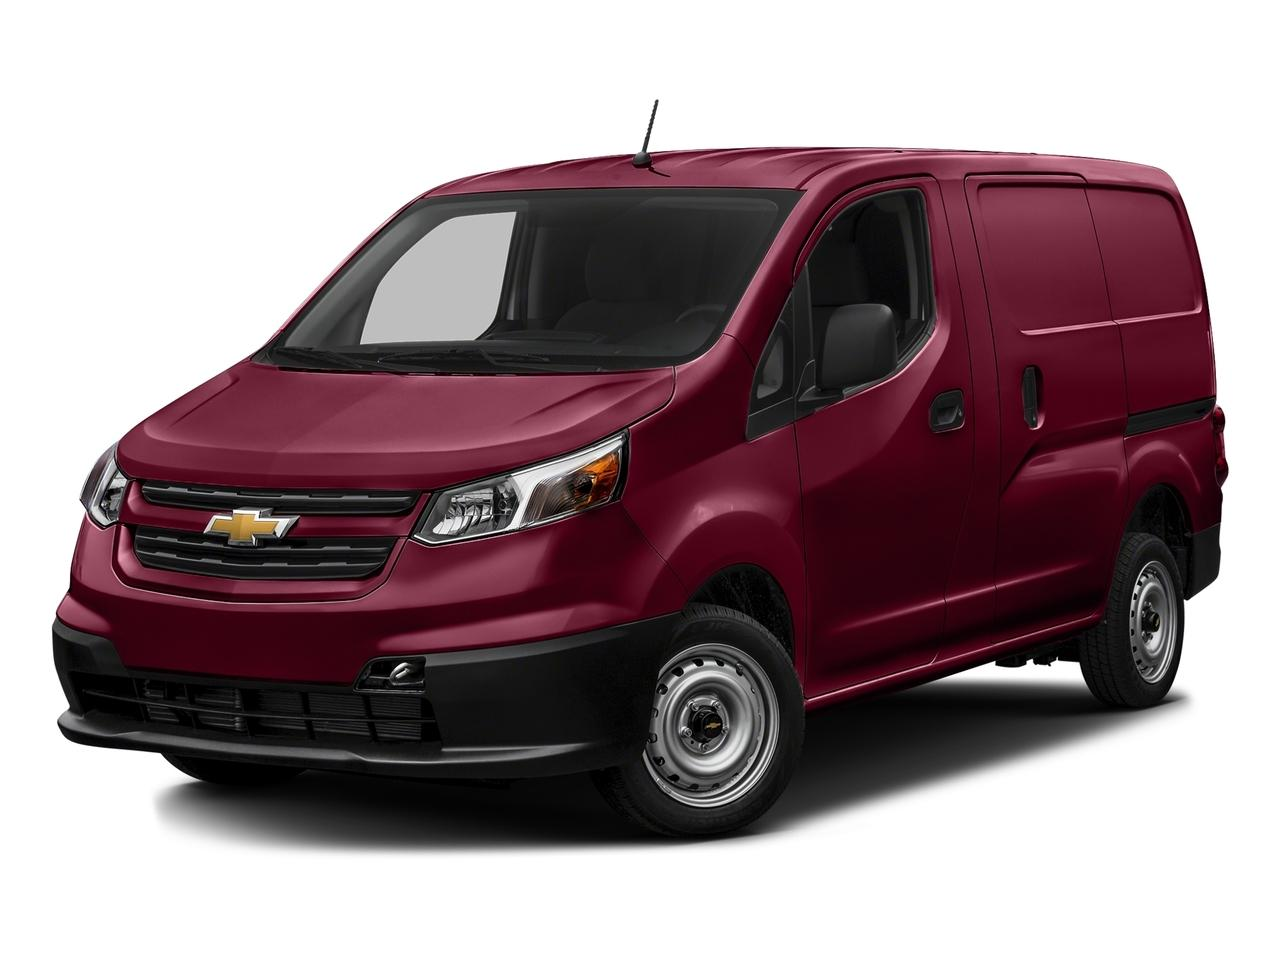 2017 Chevrolet City Express Cargo Van Vehicle Photo in Burlington, WI 53105